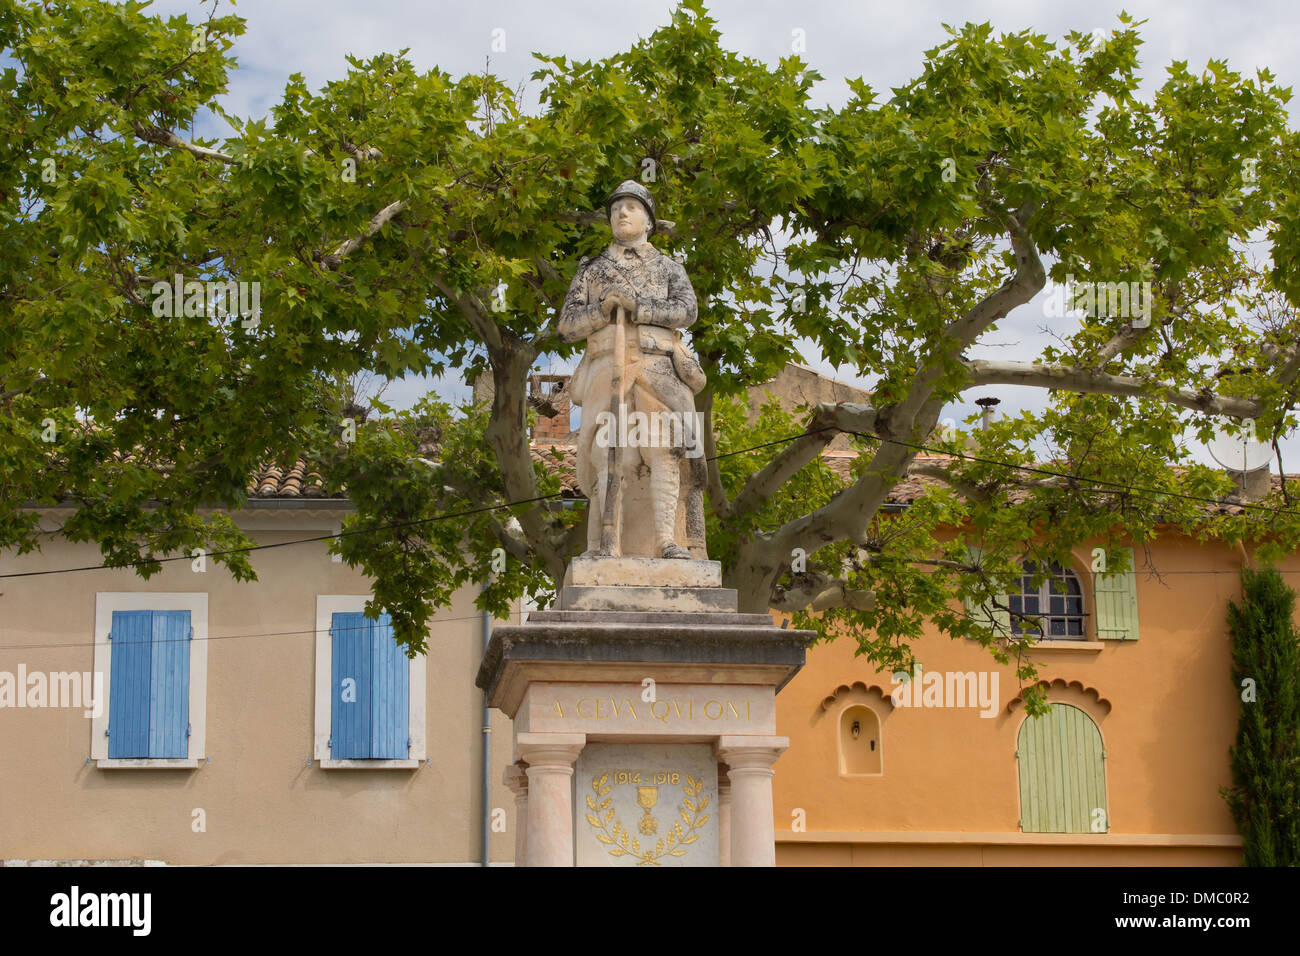 WAR DEAD MONUMENT, COMMEMORATION IN HONOUR OF FIRST WORLD WAR FIGHTERS, HILLTOP VILLAGE OF RASTEAU, VAUCLUSE (84), FRANCE - Stock Image